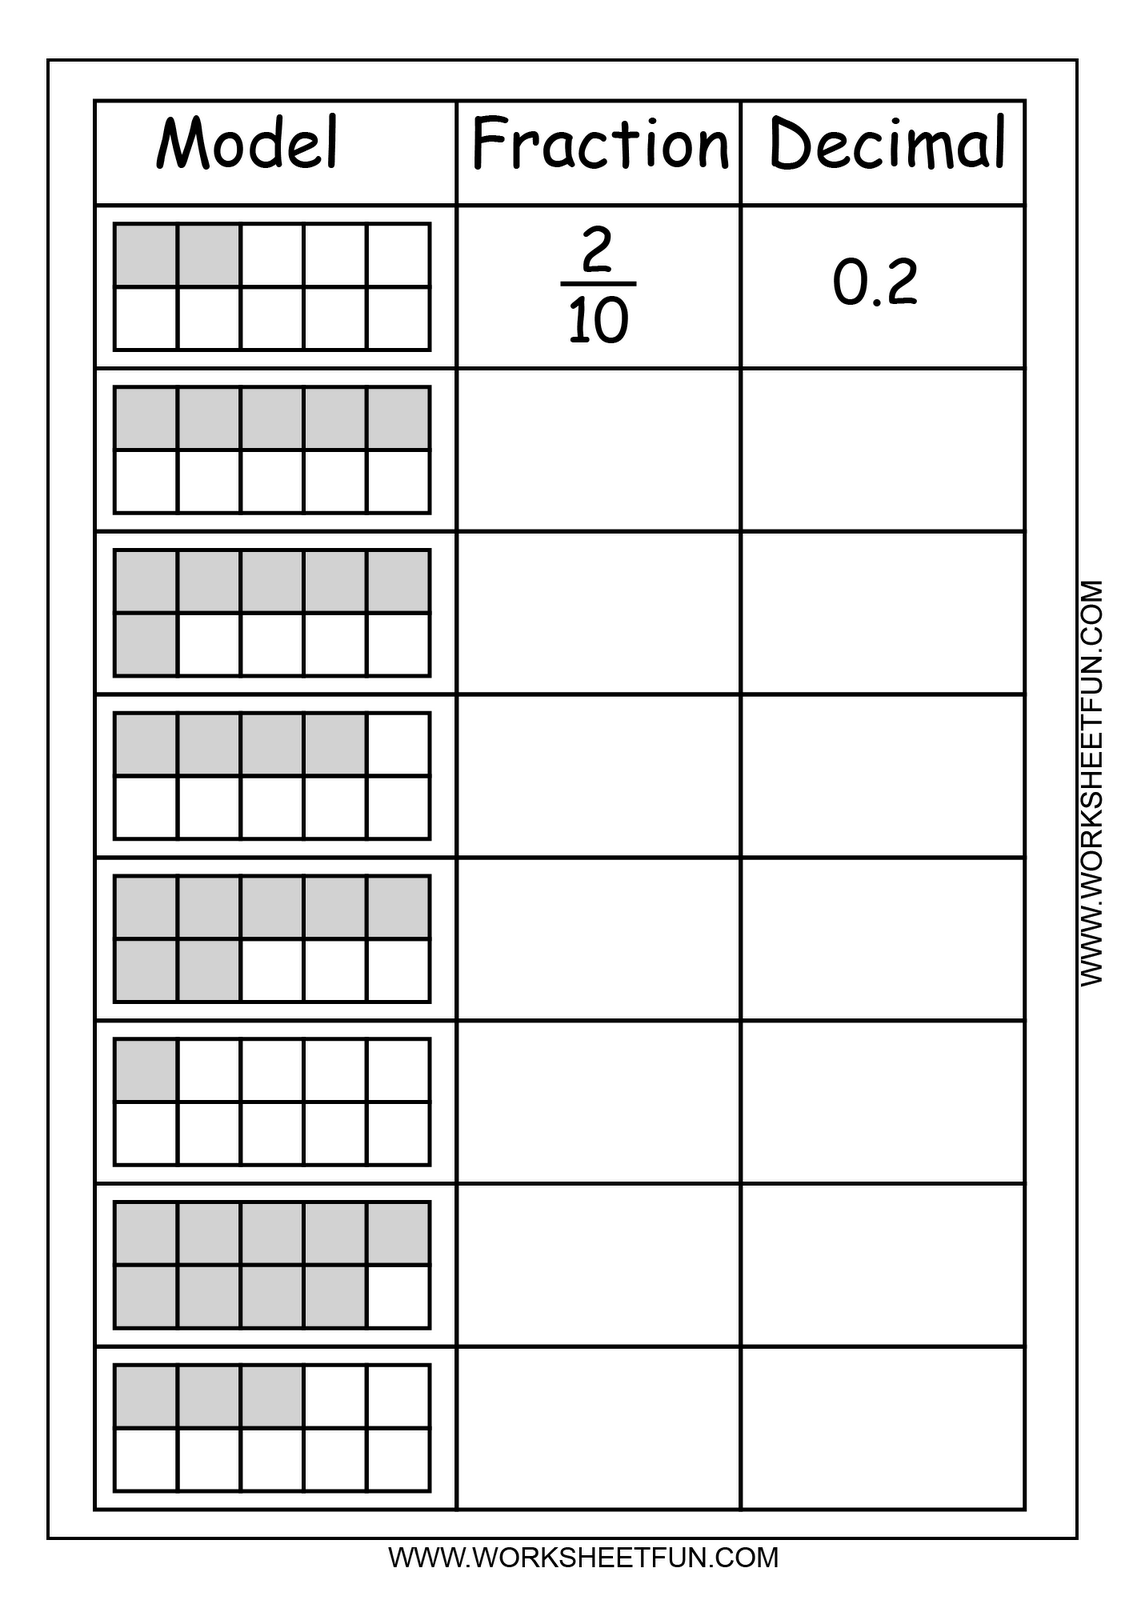 Worksheetfun FREE PRINTABLE WORKSHEETS Math – Convert Decimal to Fraction Worksheet